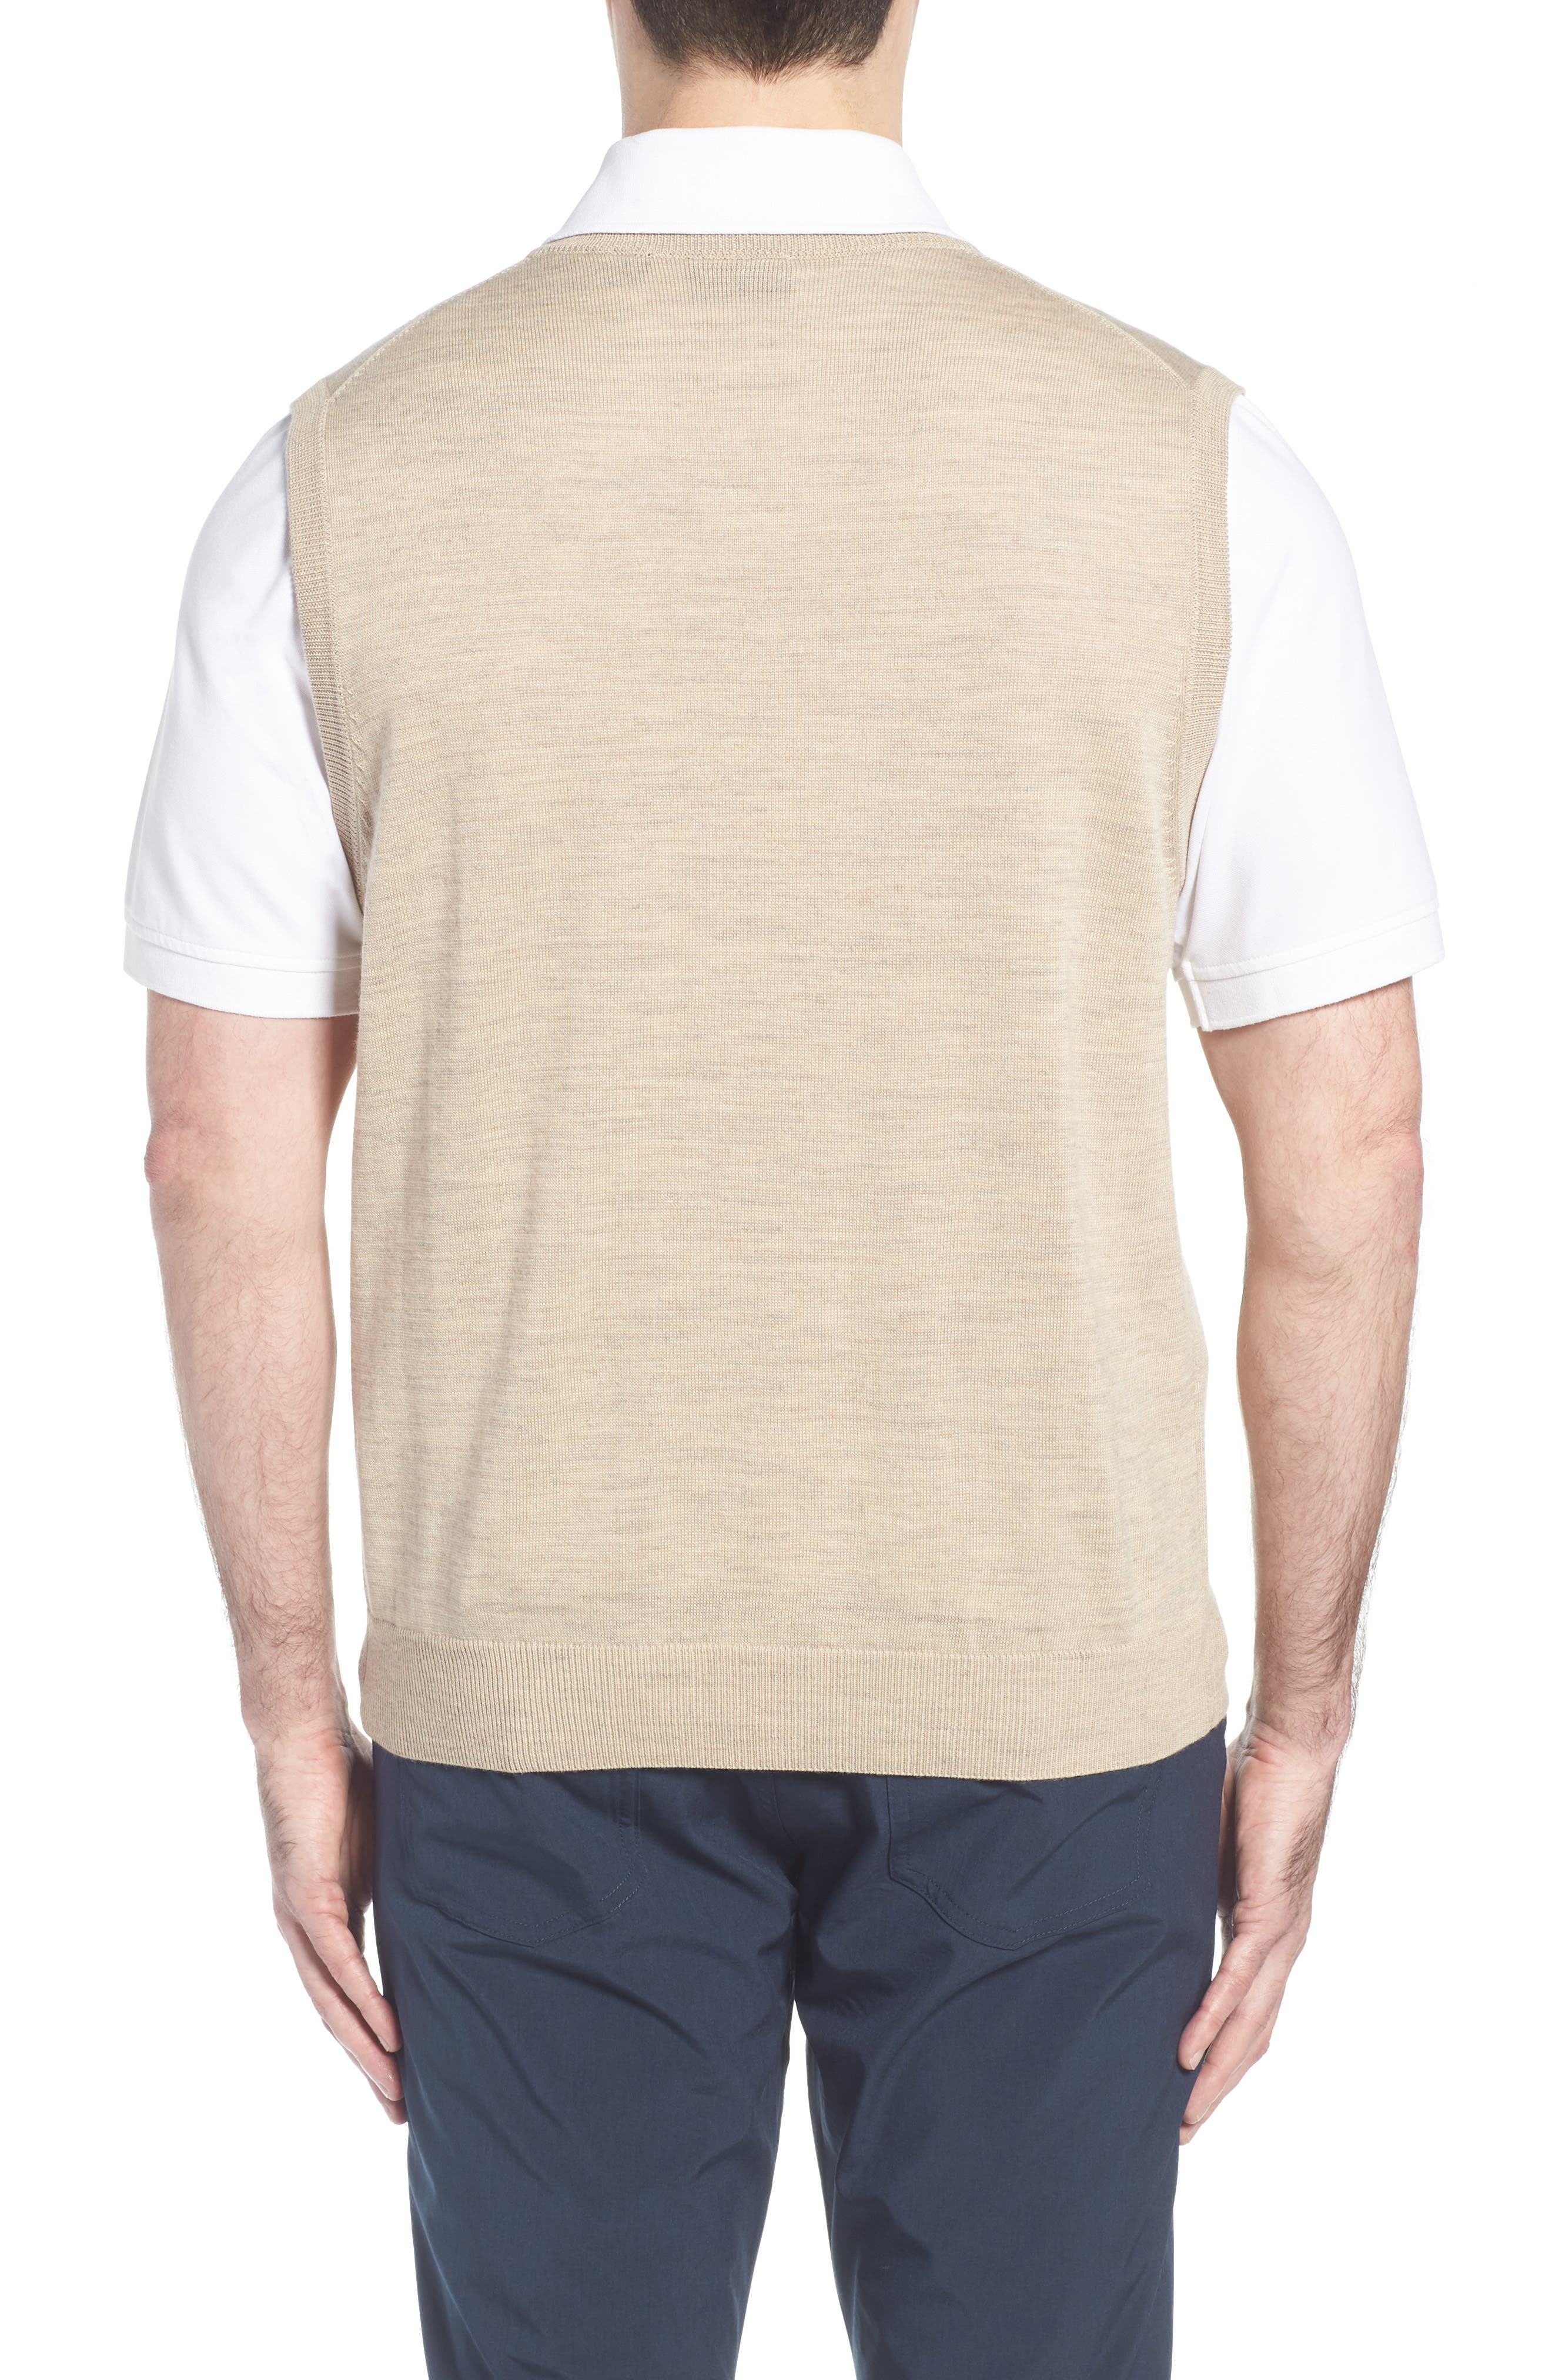 'Douglas' Merino Wool Blend V-Neck Sweater Vest,                             Alternate thumbnail 2, color,                             SAND HEATHER